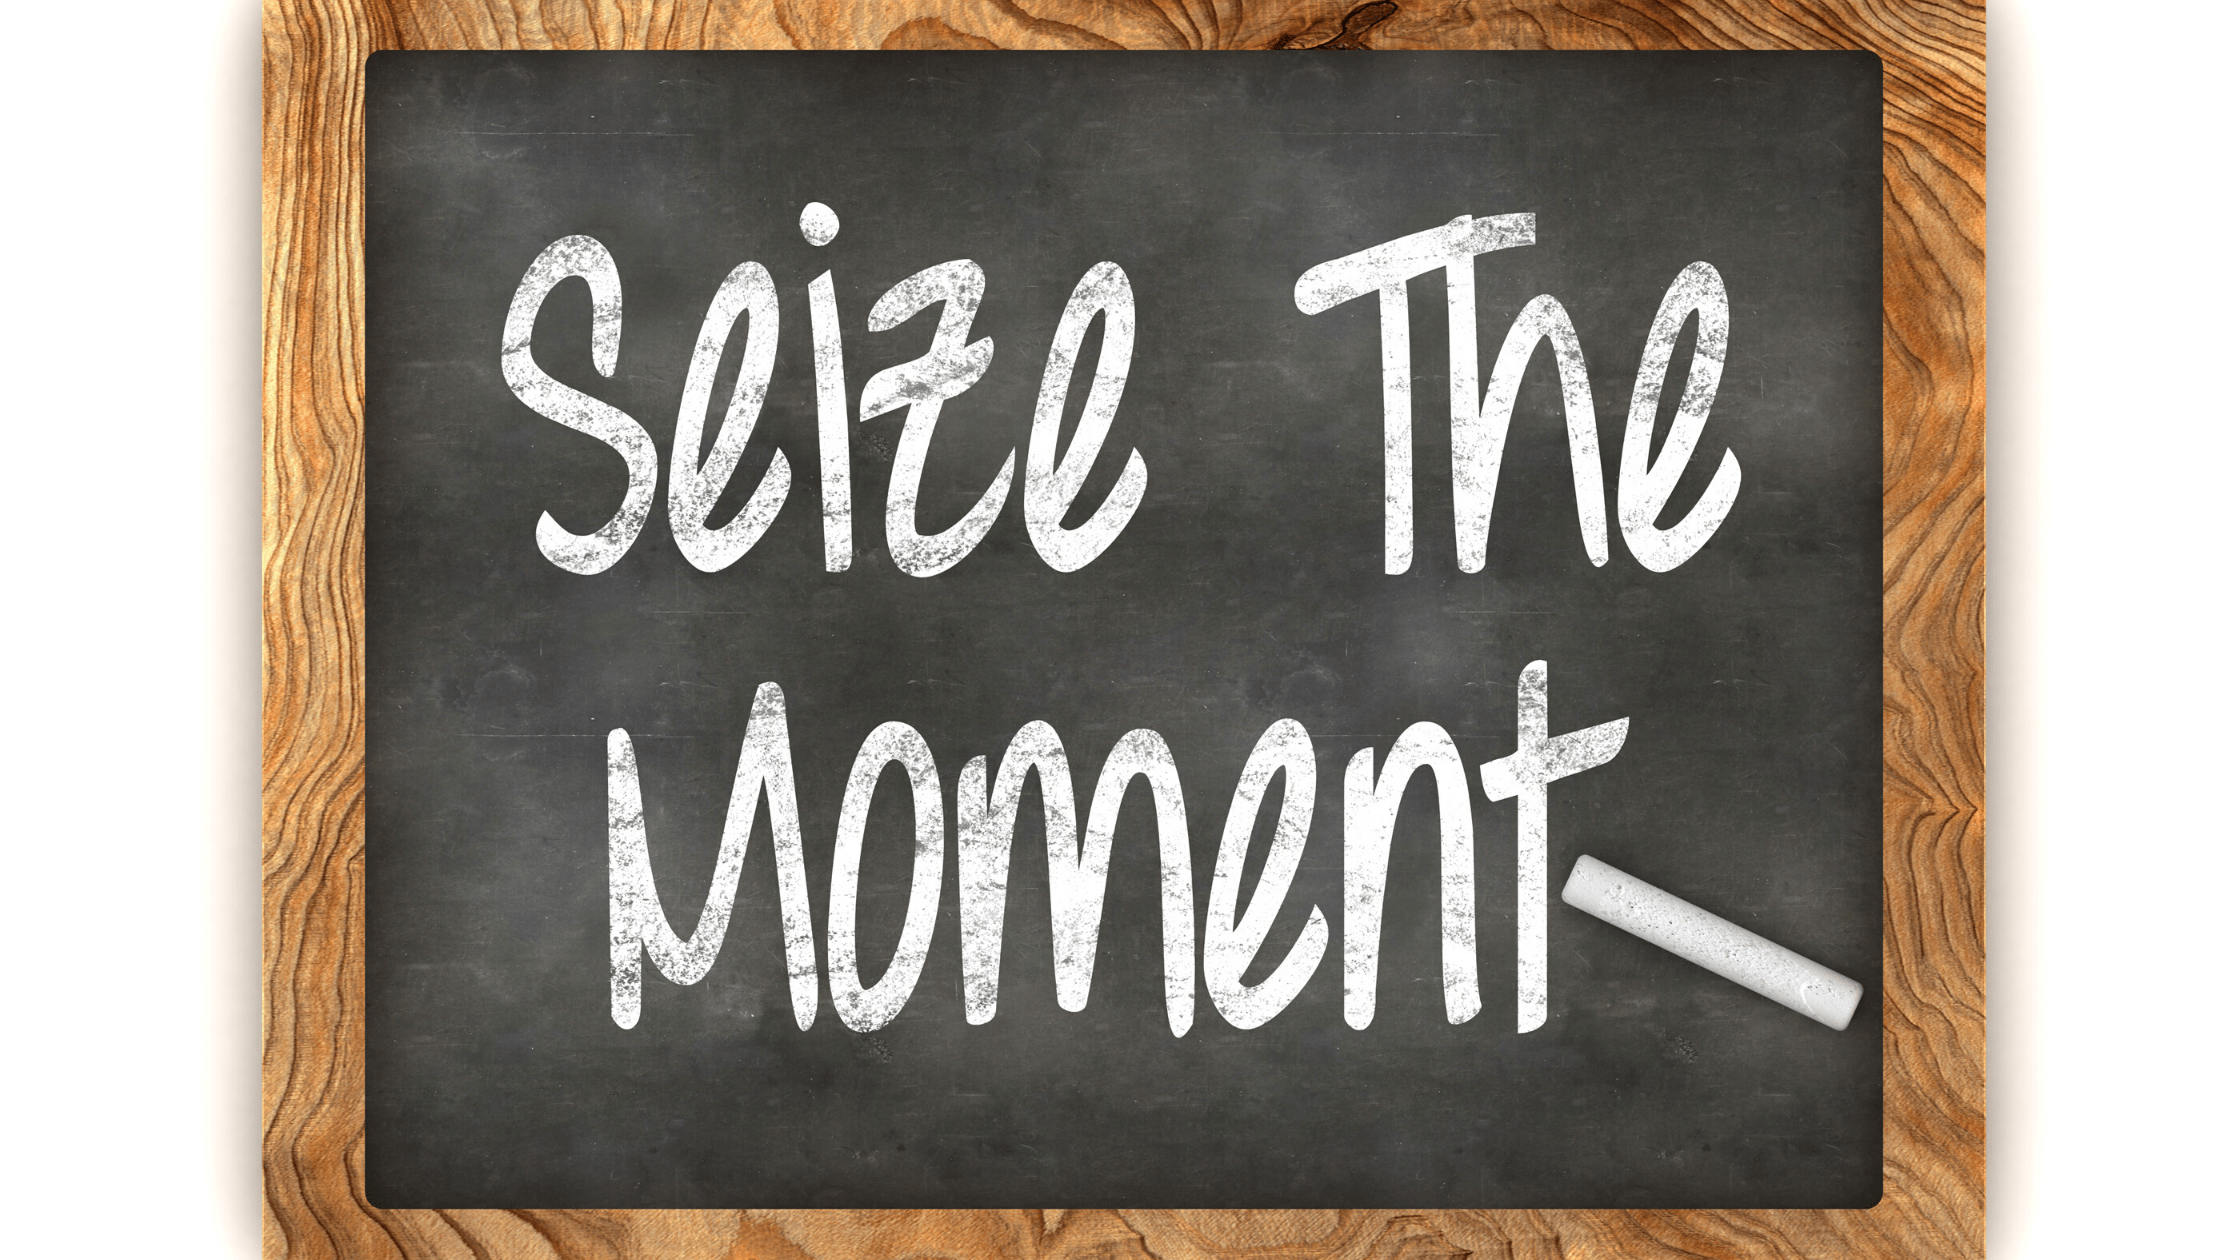 Learn to Seize the Moment and live life fullest!